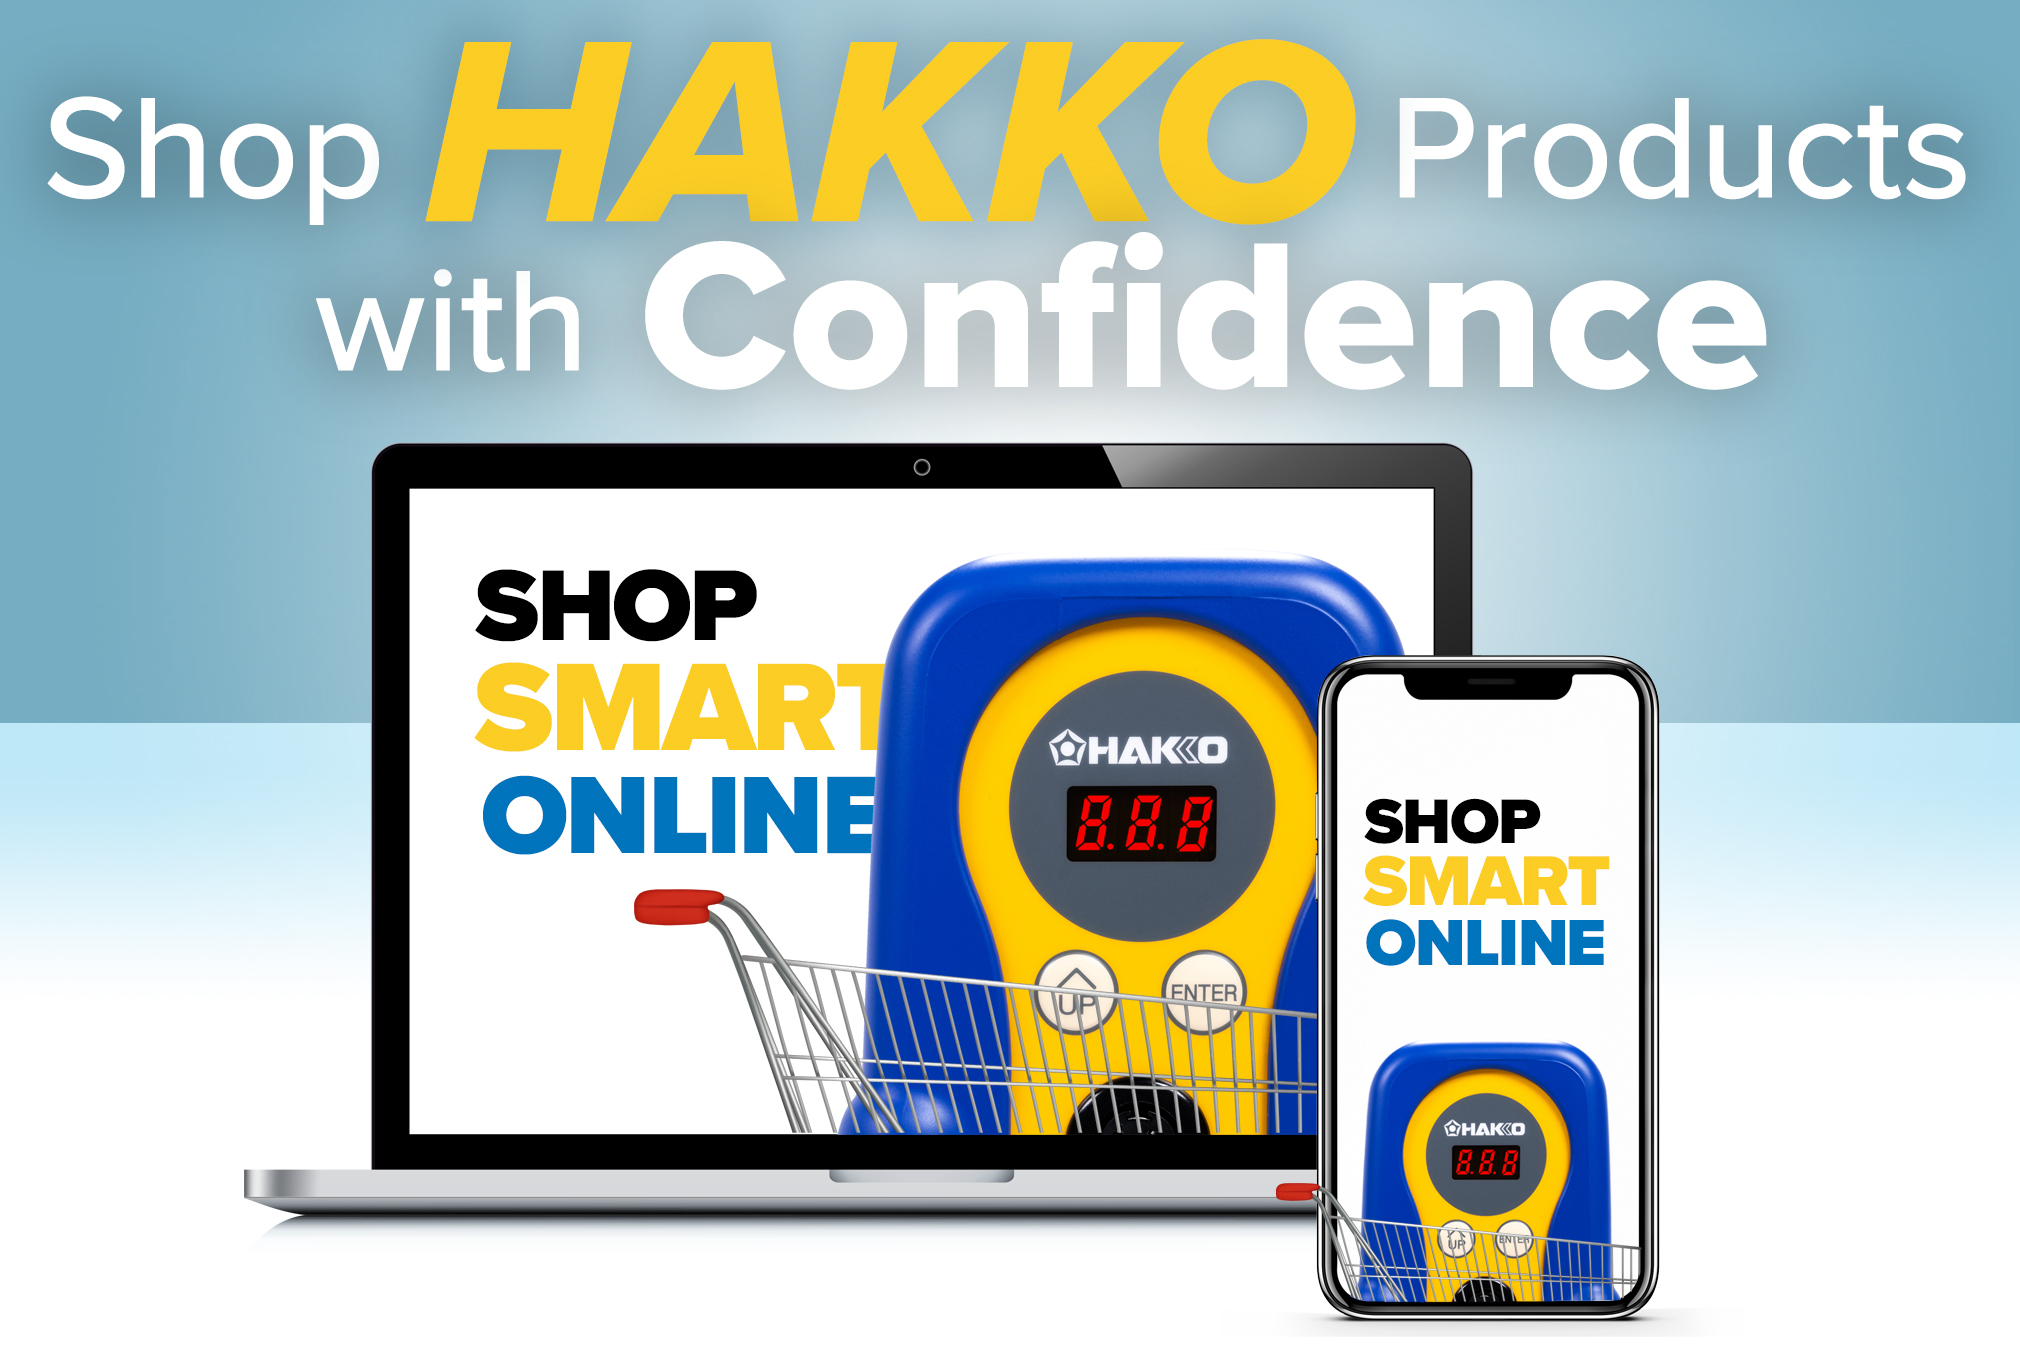 Shop Hakko Products with Confidence